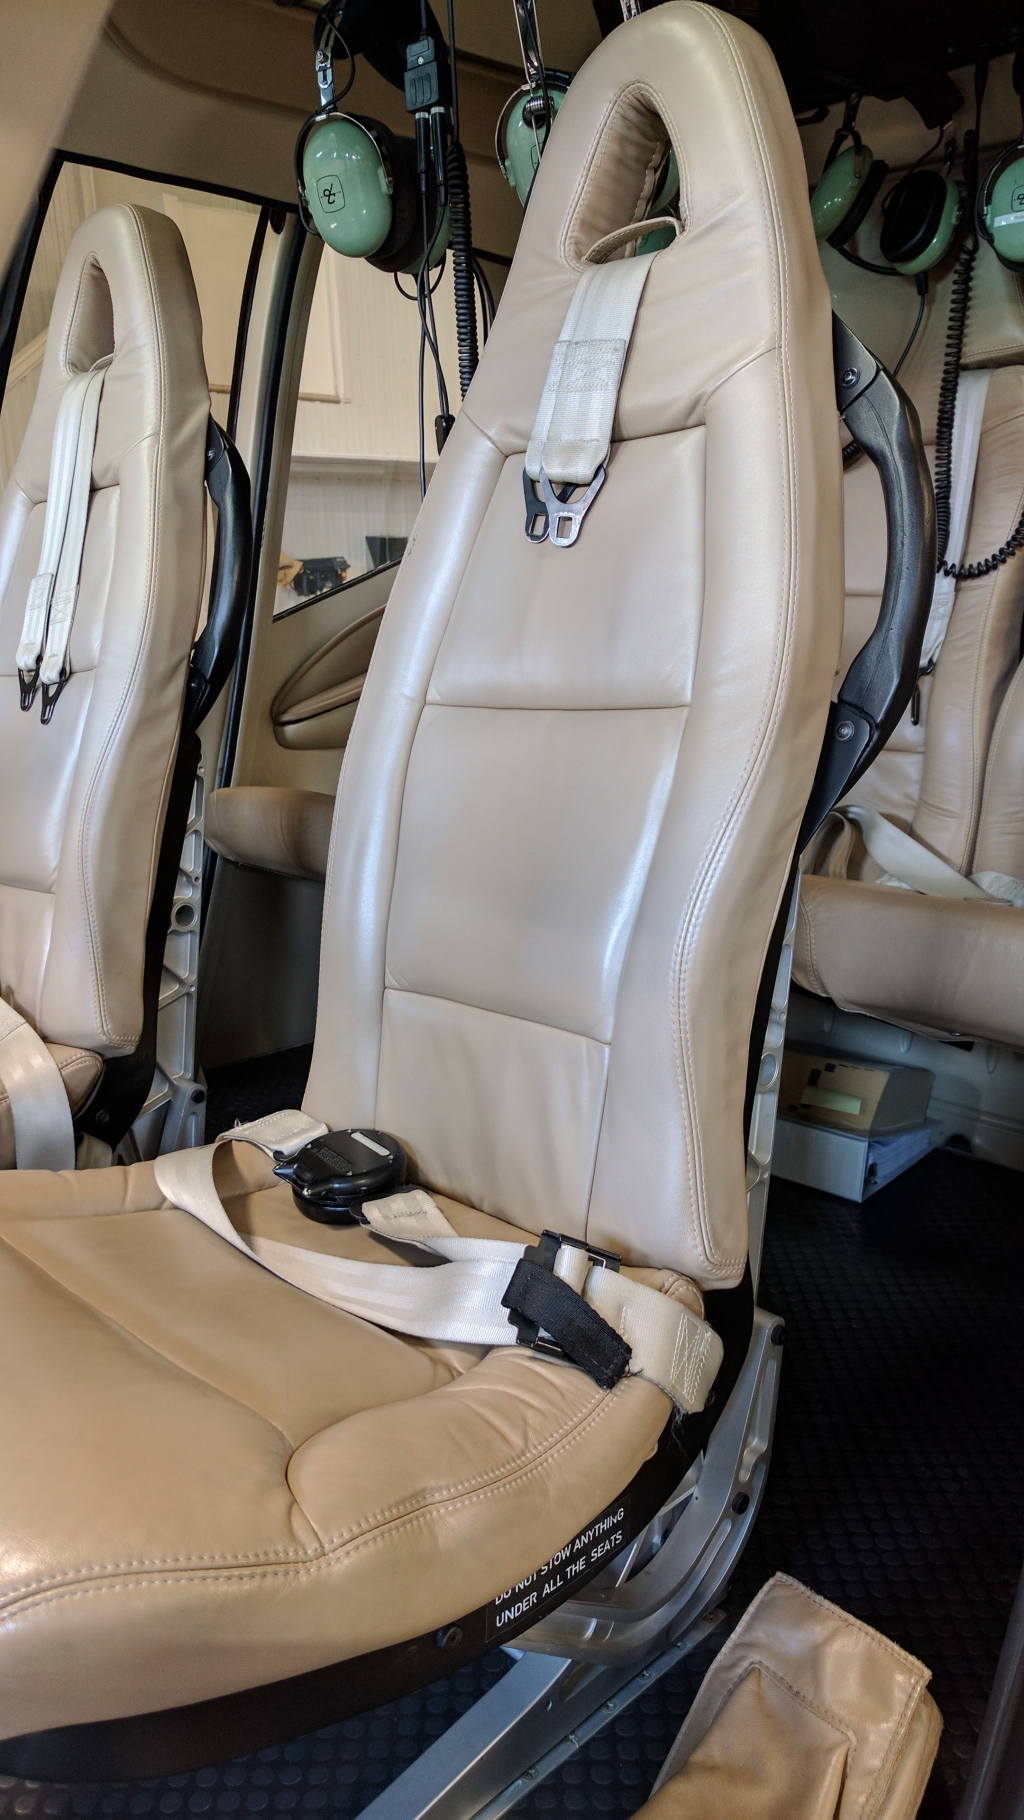 Eurocopter Ec120 B 1999 For Sale On Transglobal Aviation